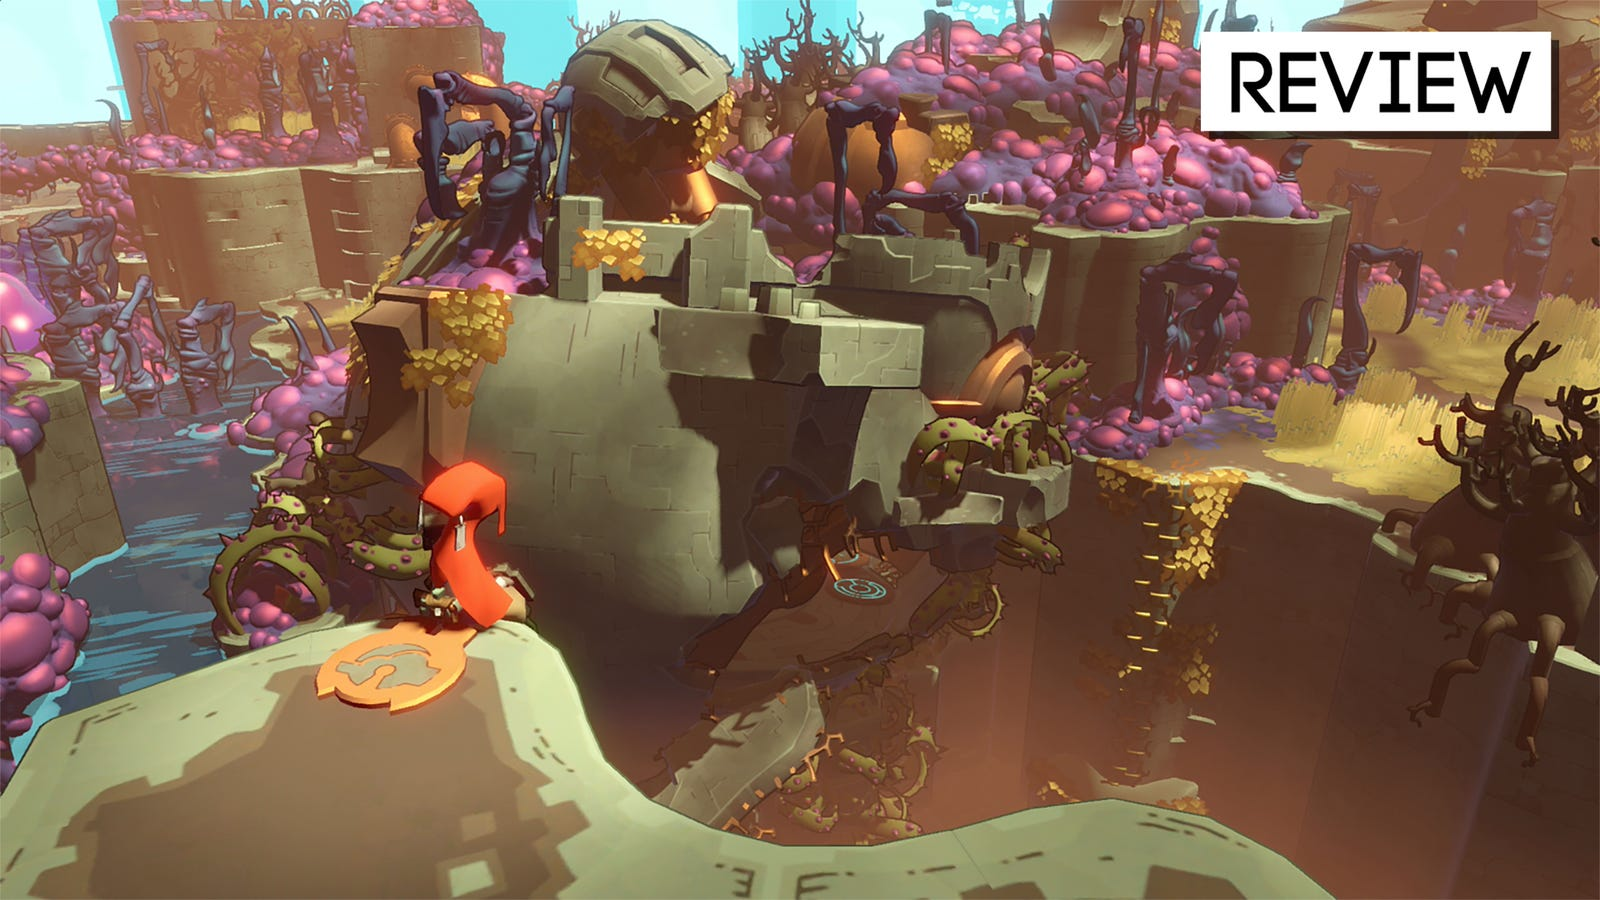 Hob: The Kotaku Review